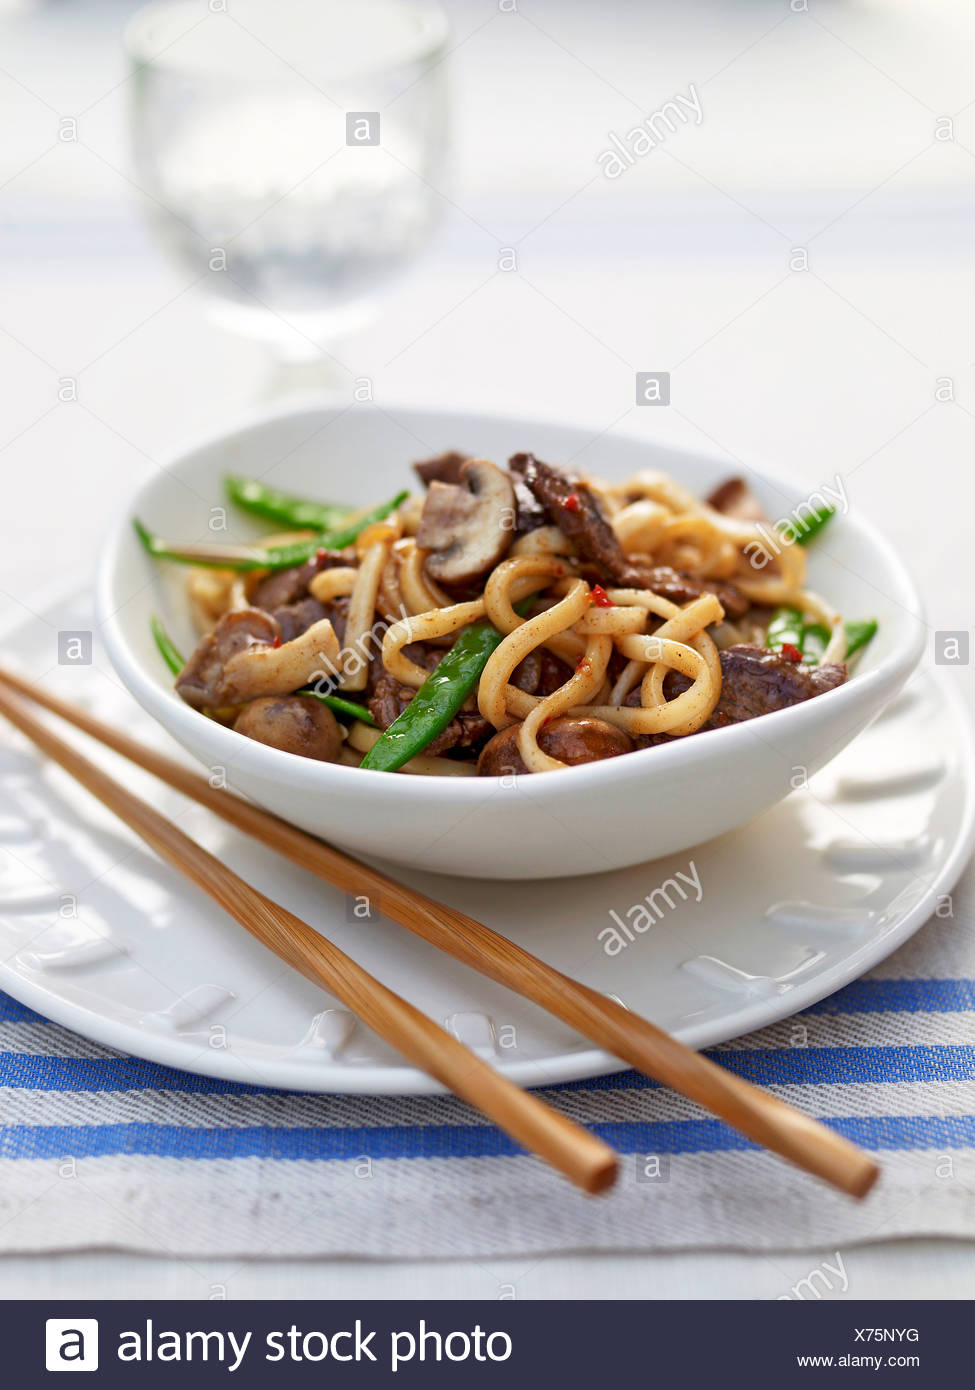 Bowl of ginger beef noodles on plate, close-up - Stock Image